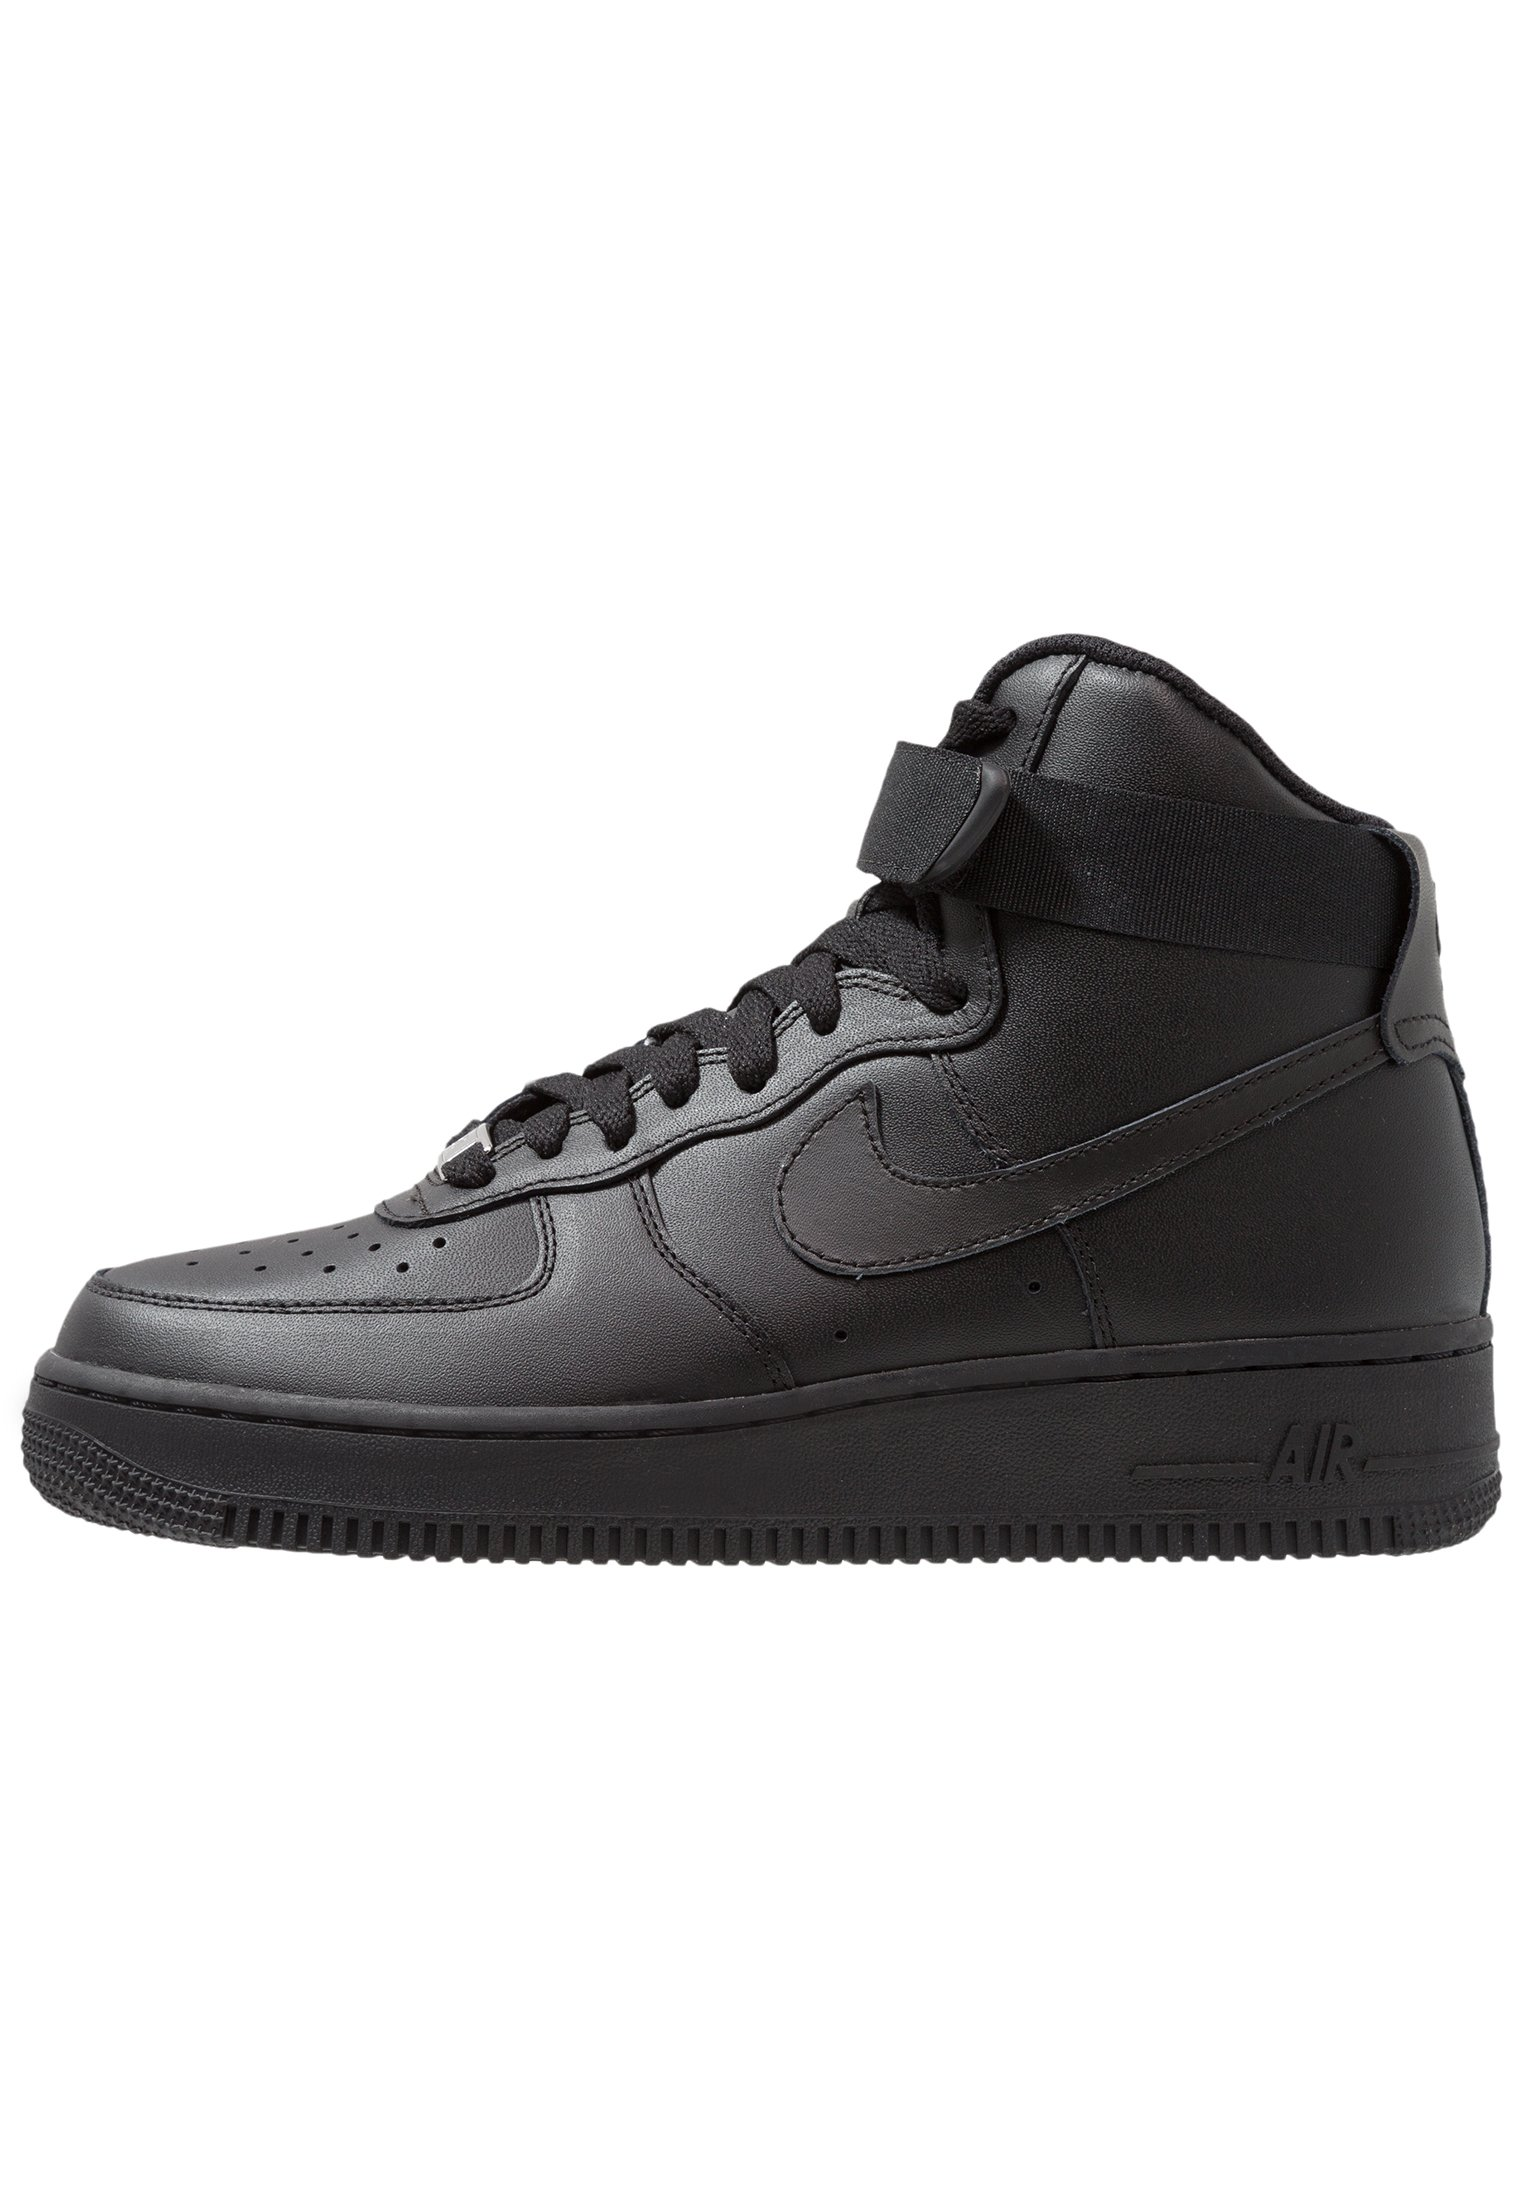 nike air force 1 ragazza alte